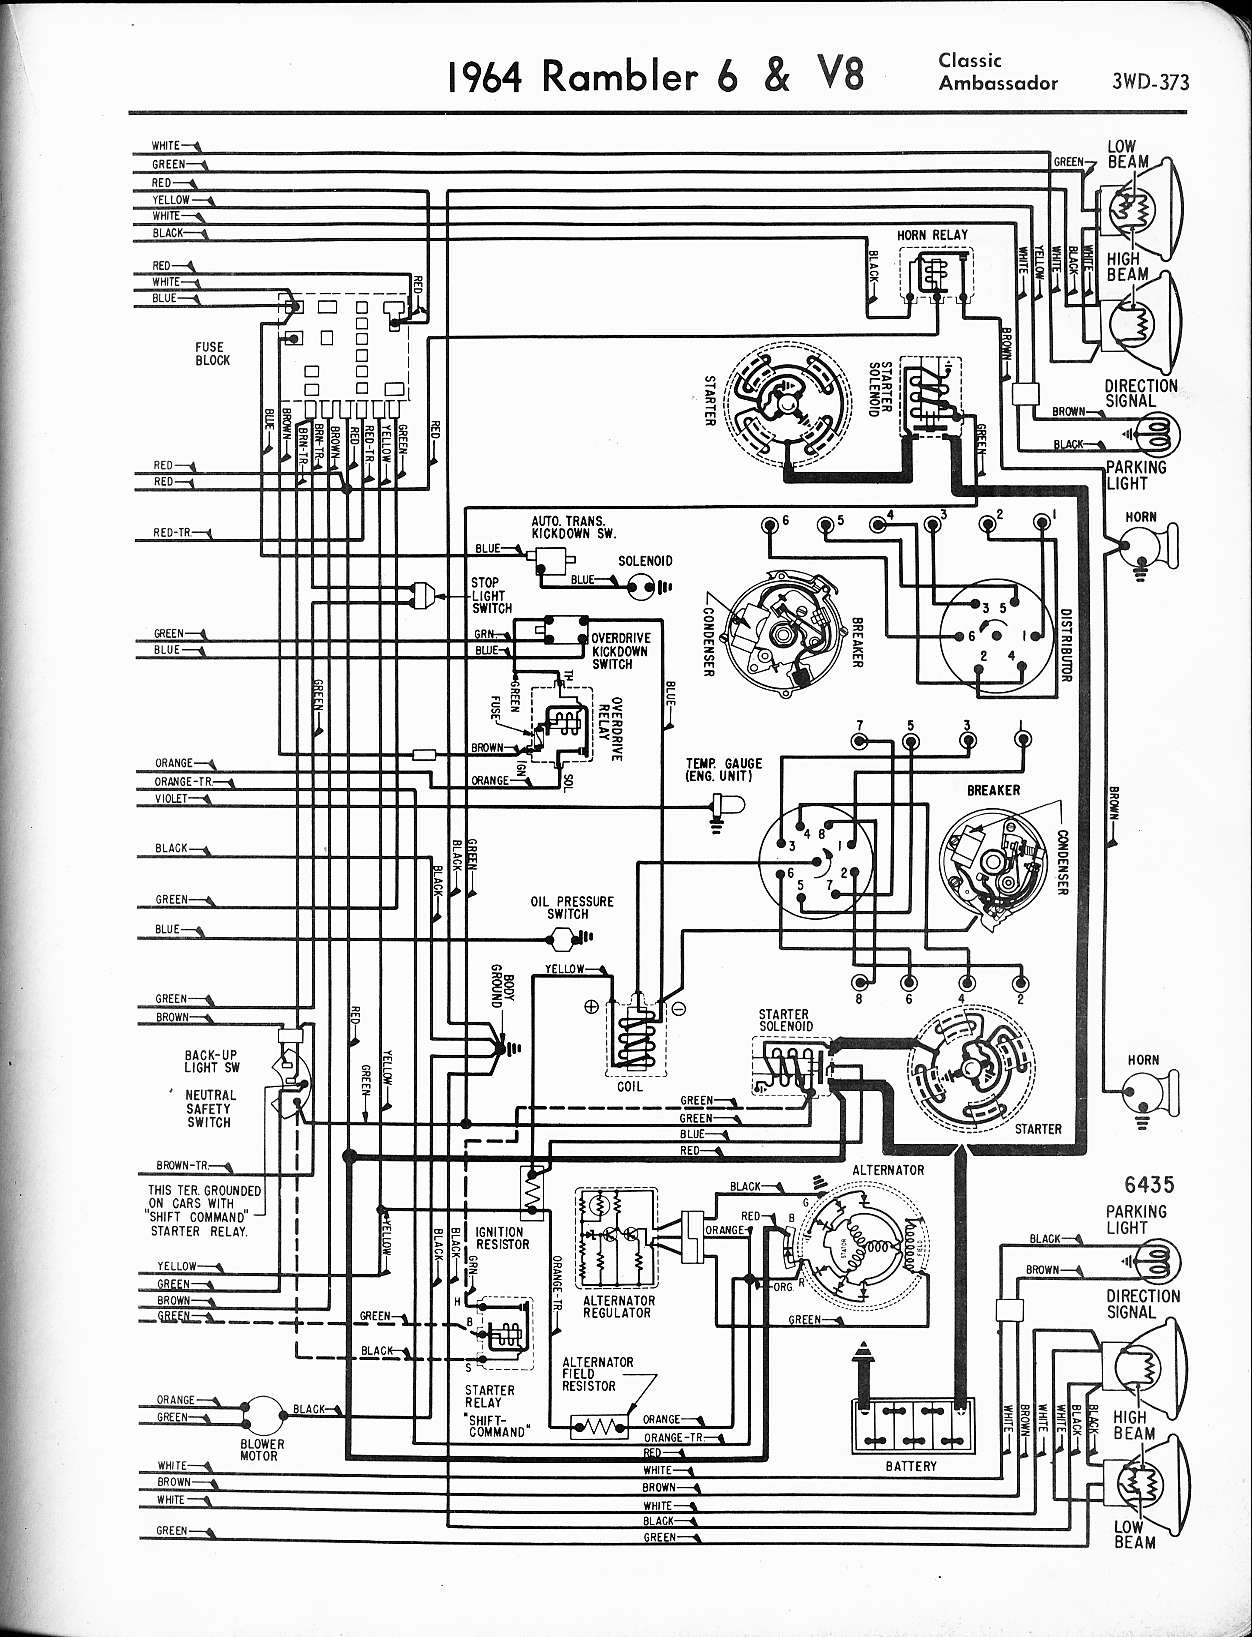 Clic Car Headlight Wiring Diagram. How Electric Cars Work